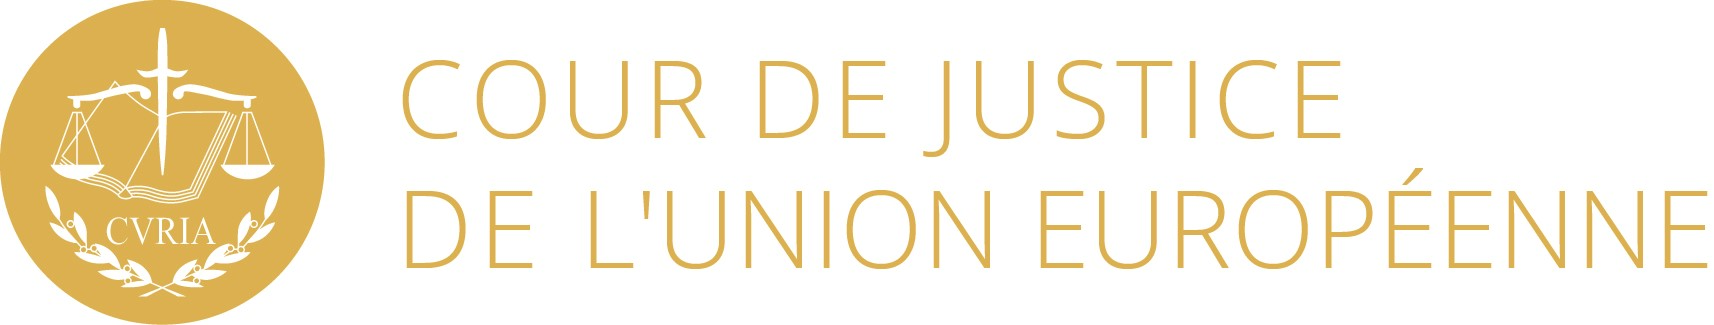 Court of Justice of the European Union (CJEU)